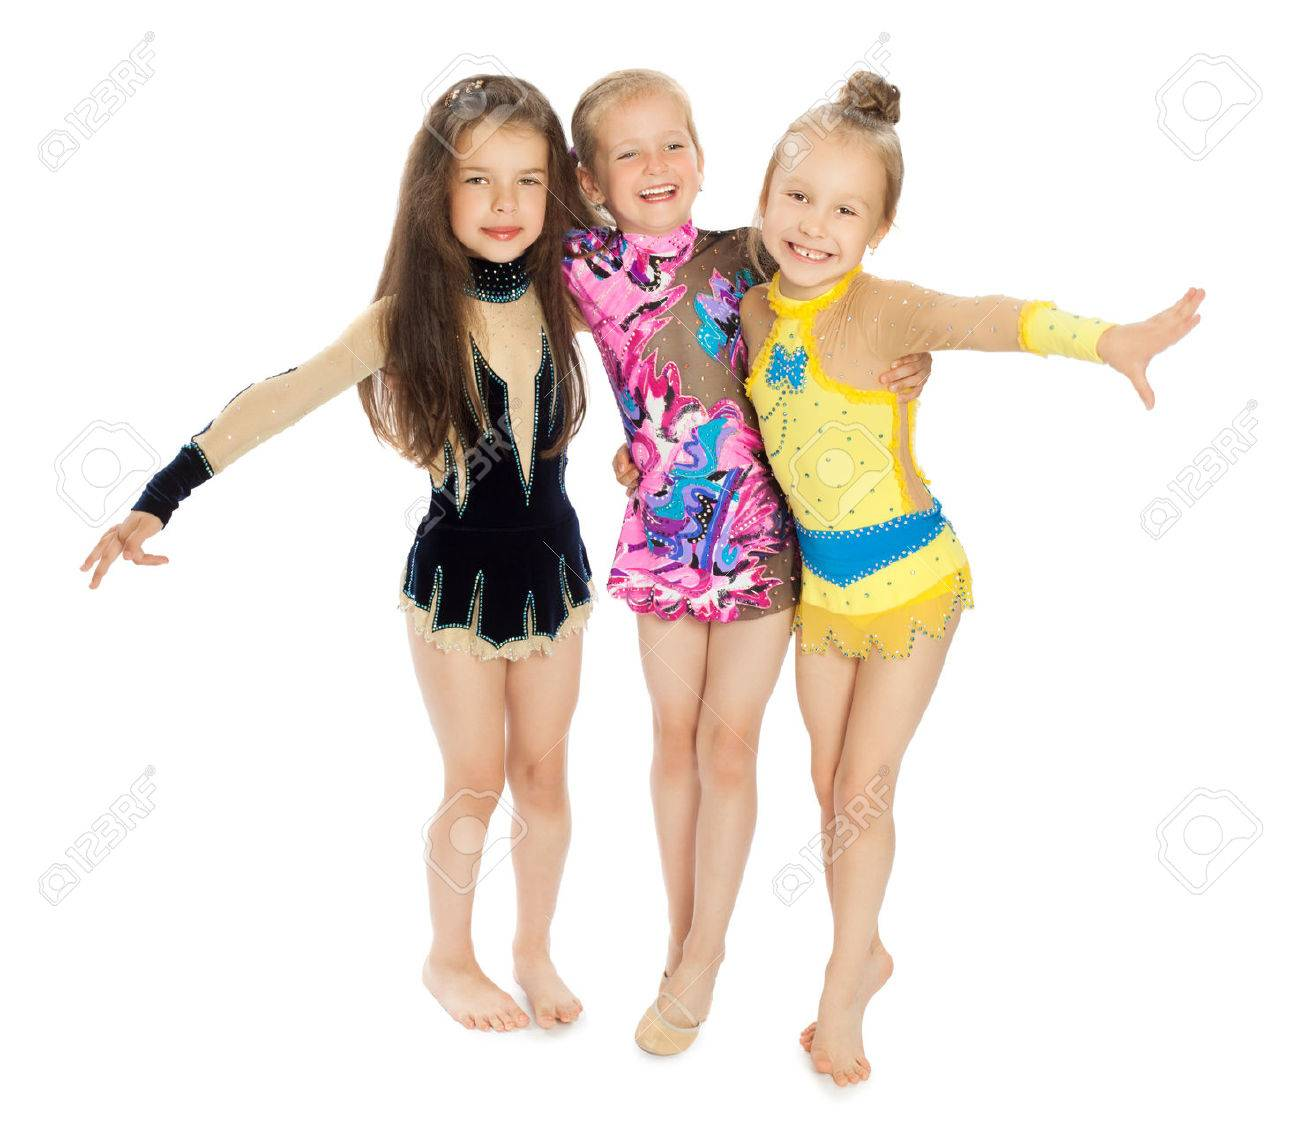 Three beautiful girls beautiful girls sports swimsuits hugging each other.Isolated on white background - 48440506